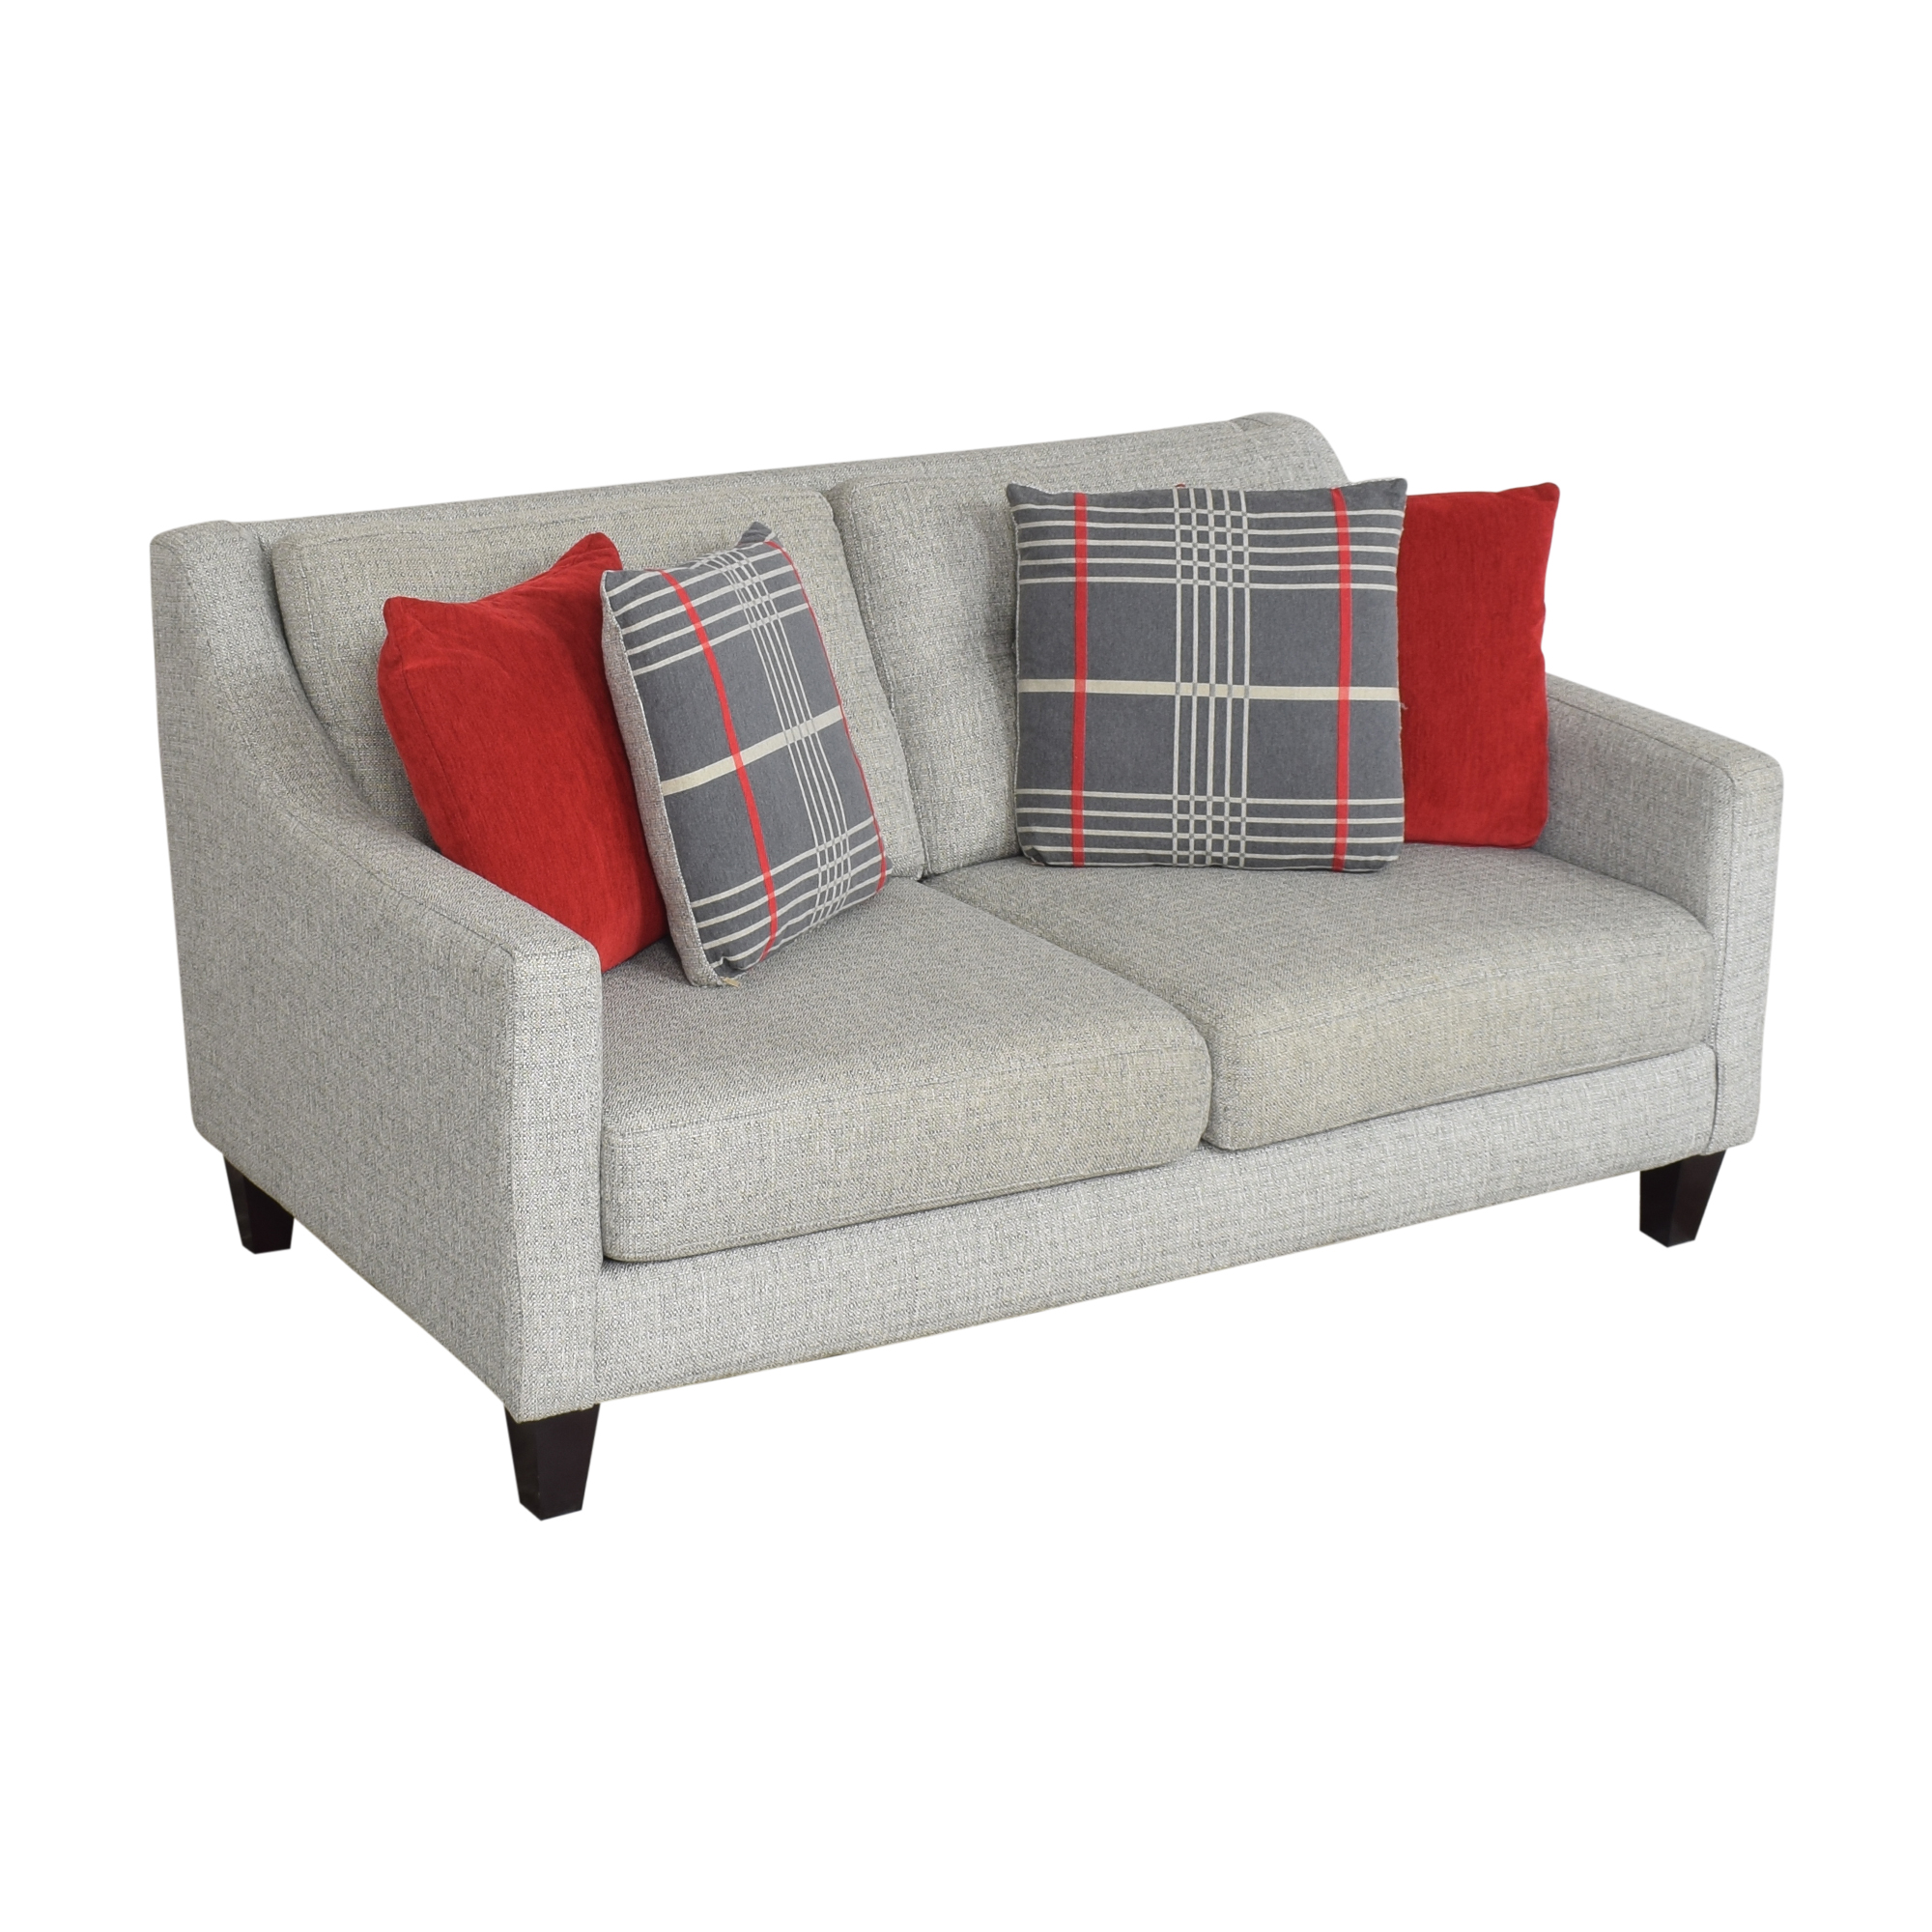 shop Raymour & Flanigan Raymour & Flanigan Kristoff Loveseat with Pillows online